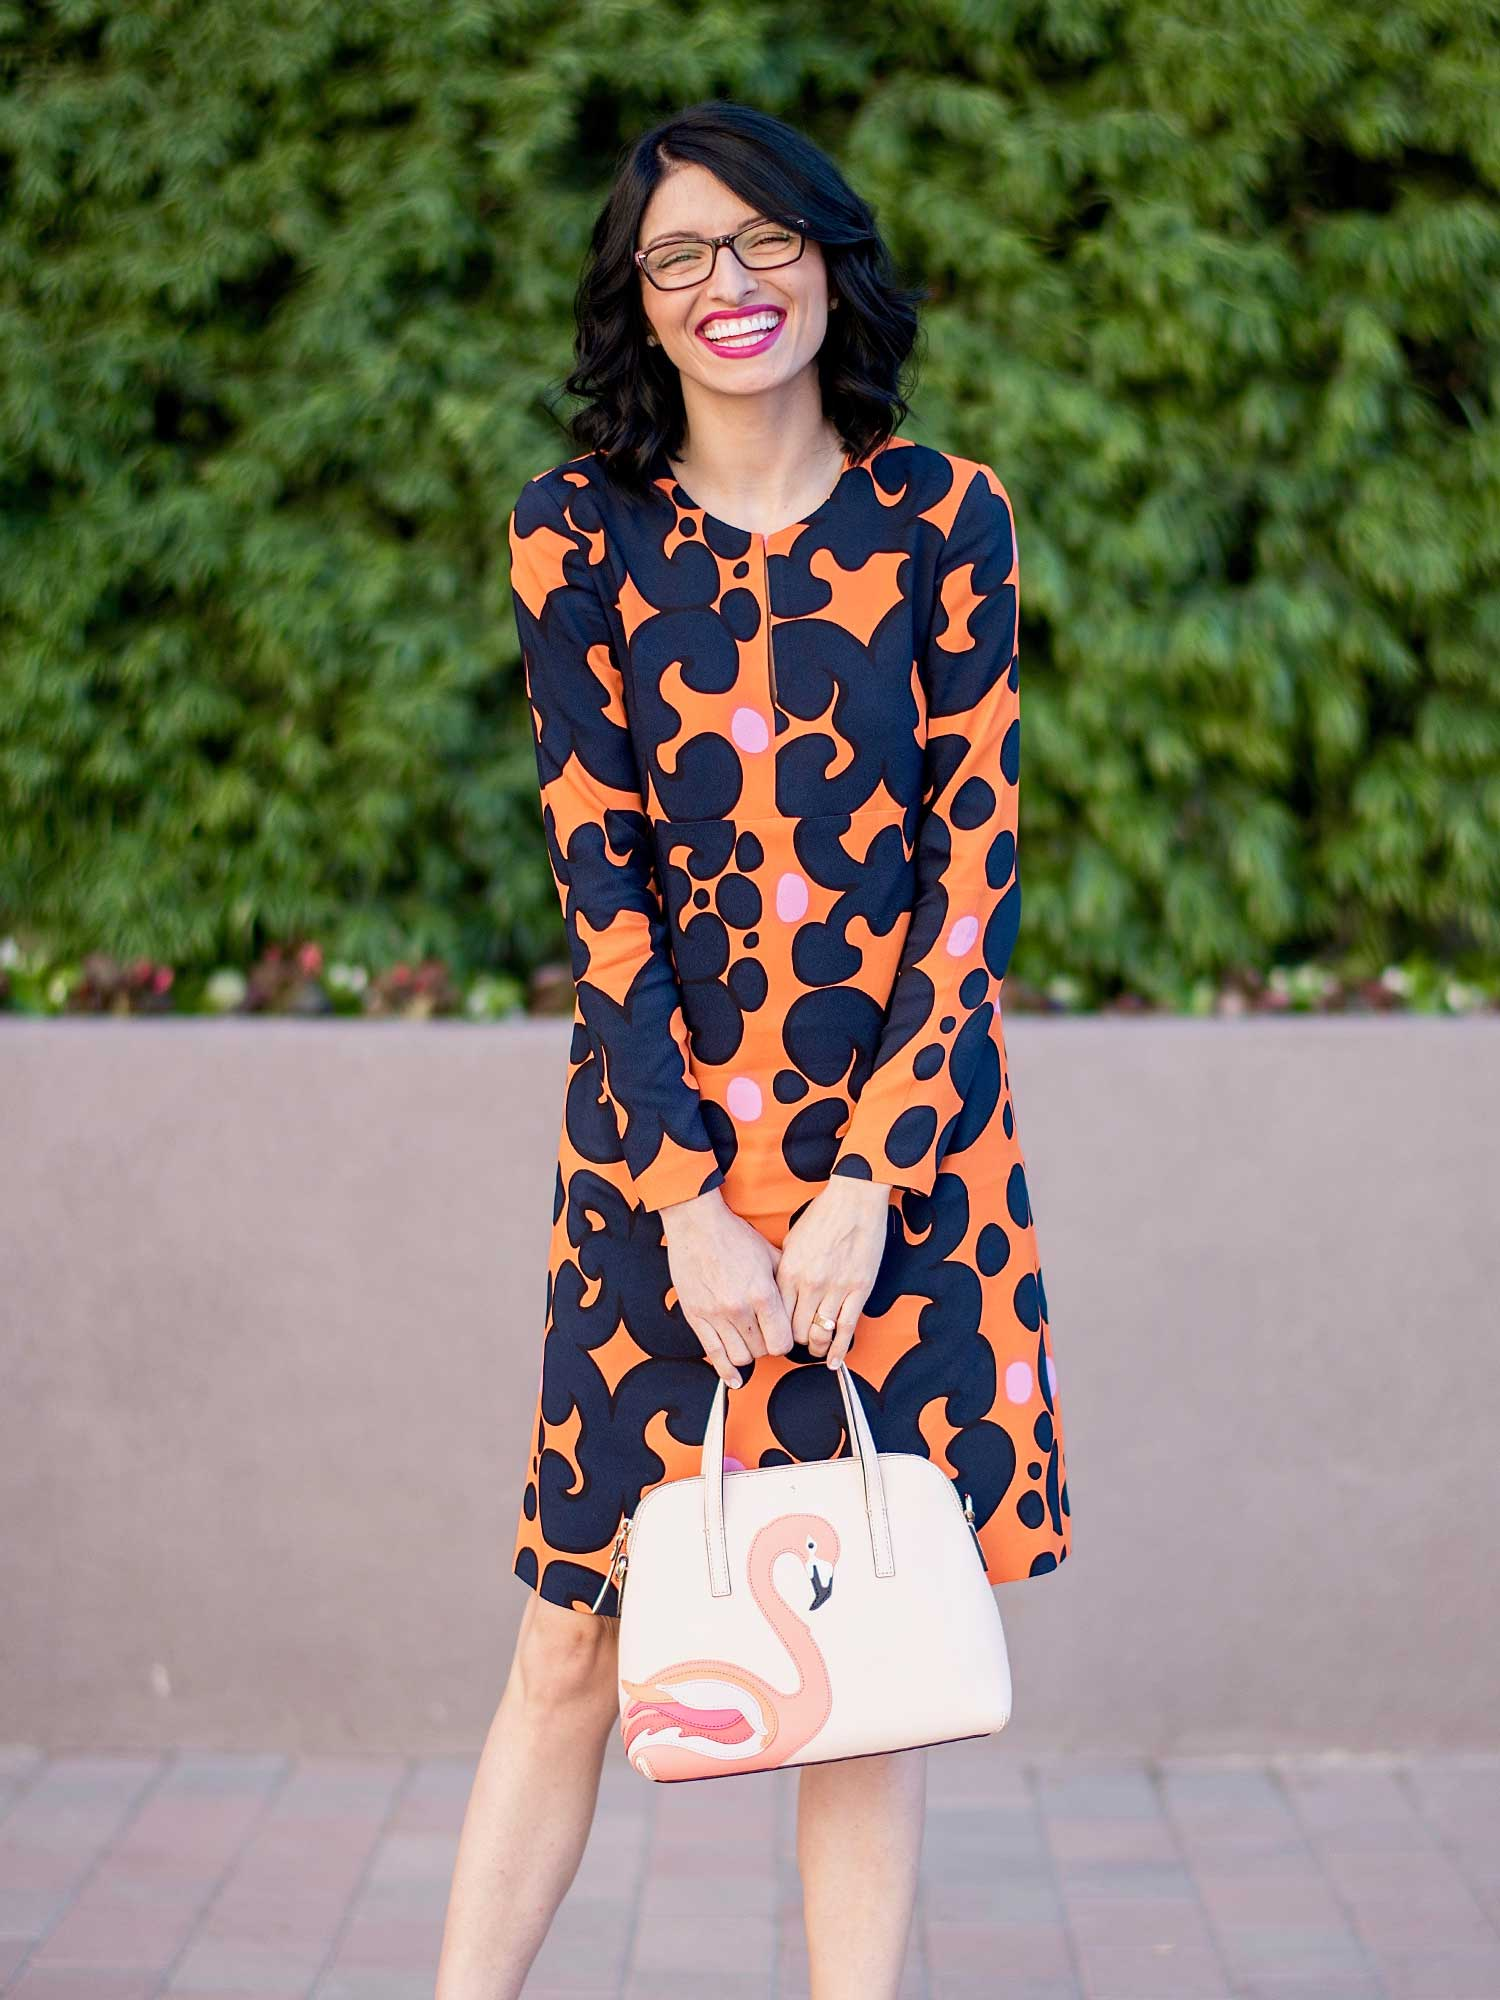 jenna-pilant-lucky-little-mustardseed-san-diego-fashion-blogger-how-to-wear-orange-in-fall-and-not-look-like-a-pumpkin-1